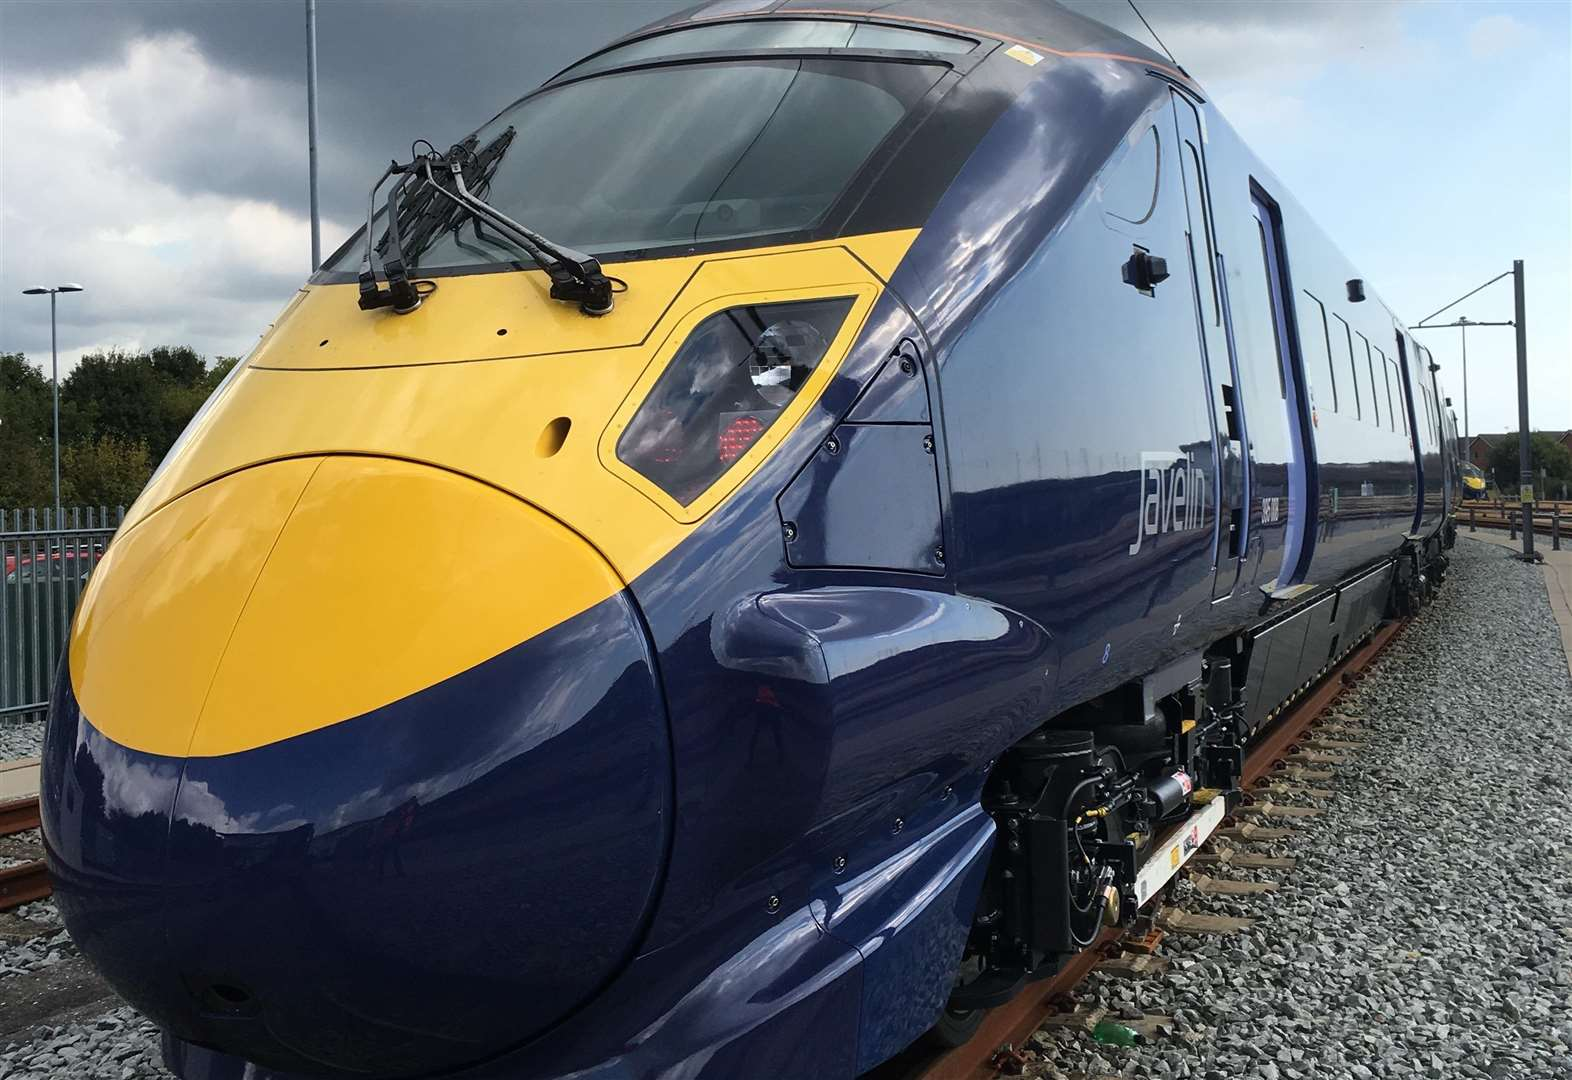 Commuters get high-speed service boost after damaged train returns